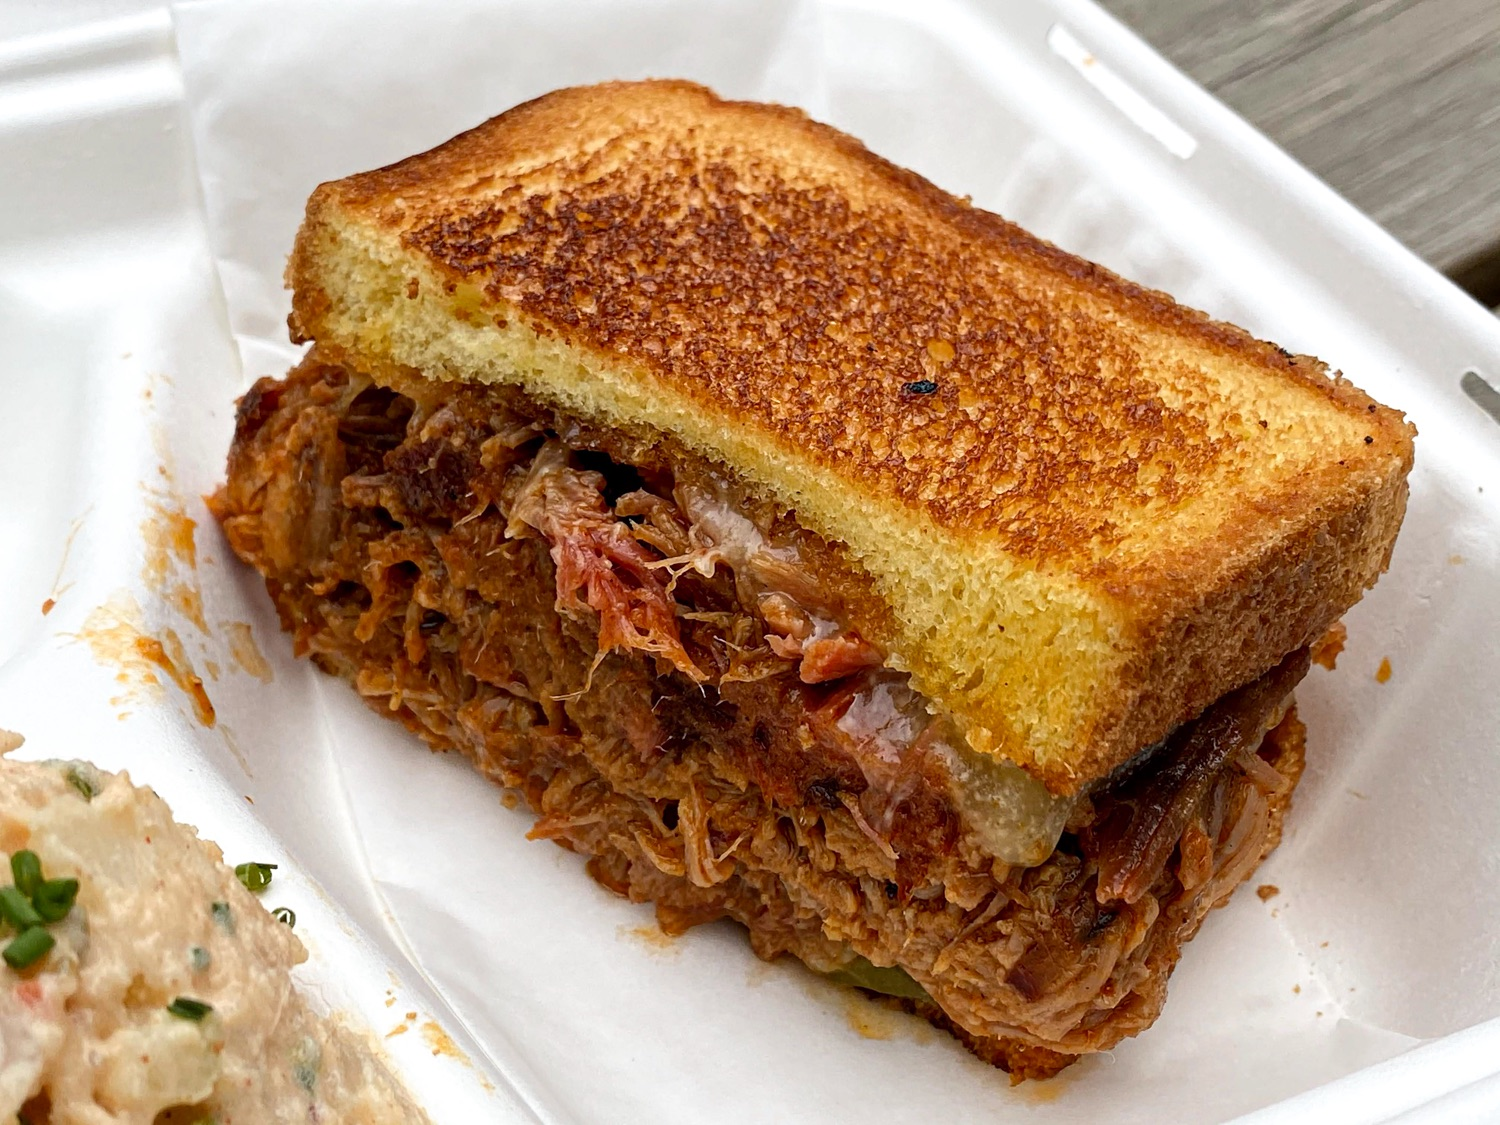 The Porky Melt at The Dinner Bell Barbecue Food Cart – A Culinary Treasure! Culinary Treasure Network Steven Shomler